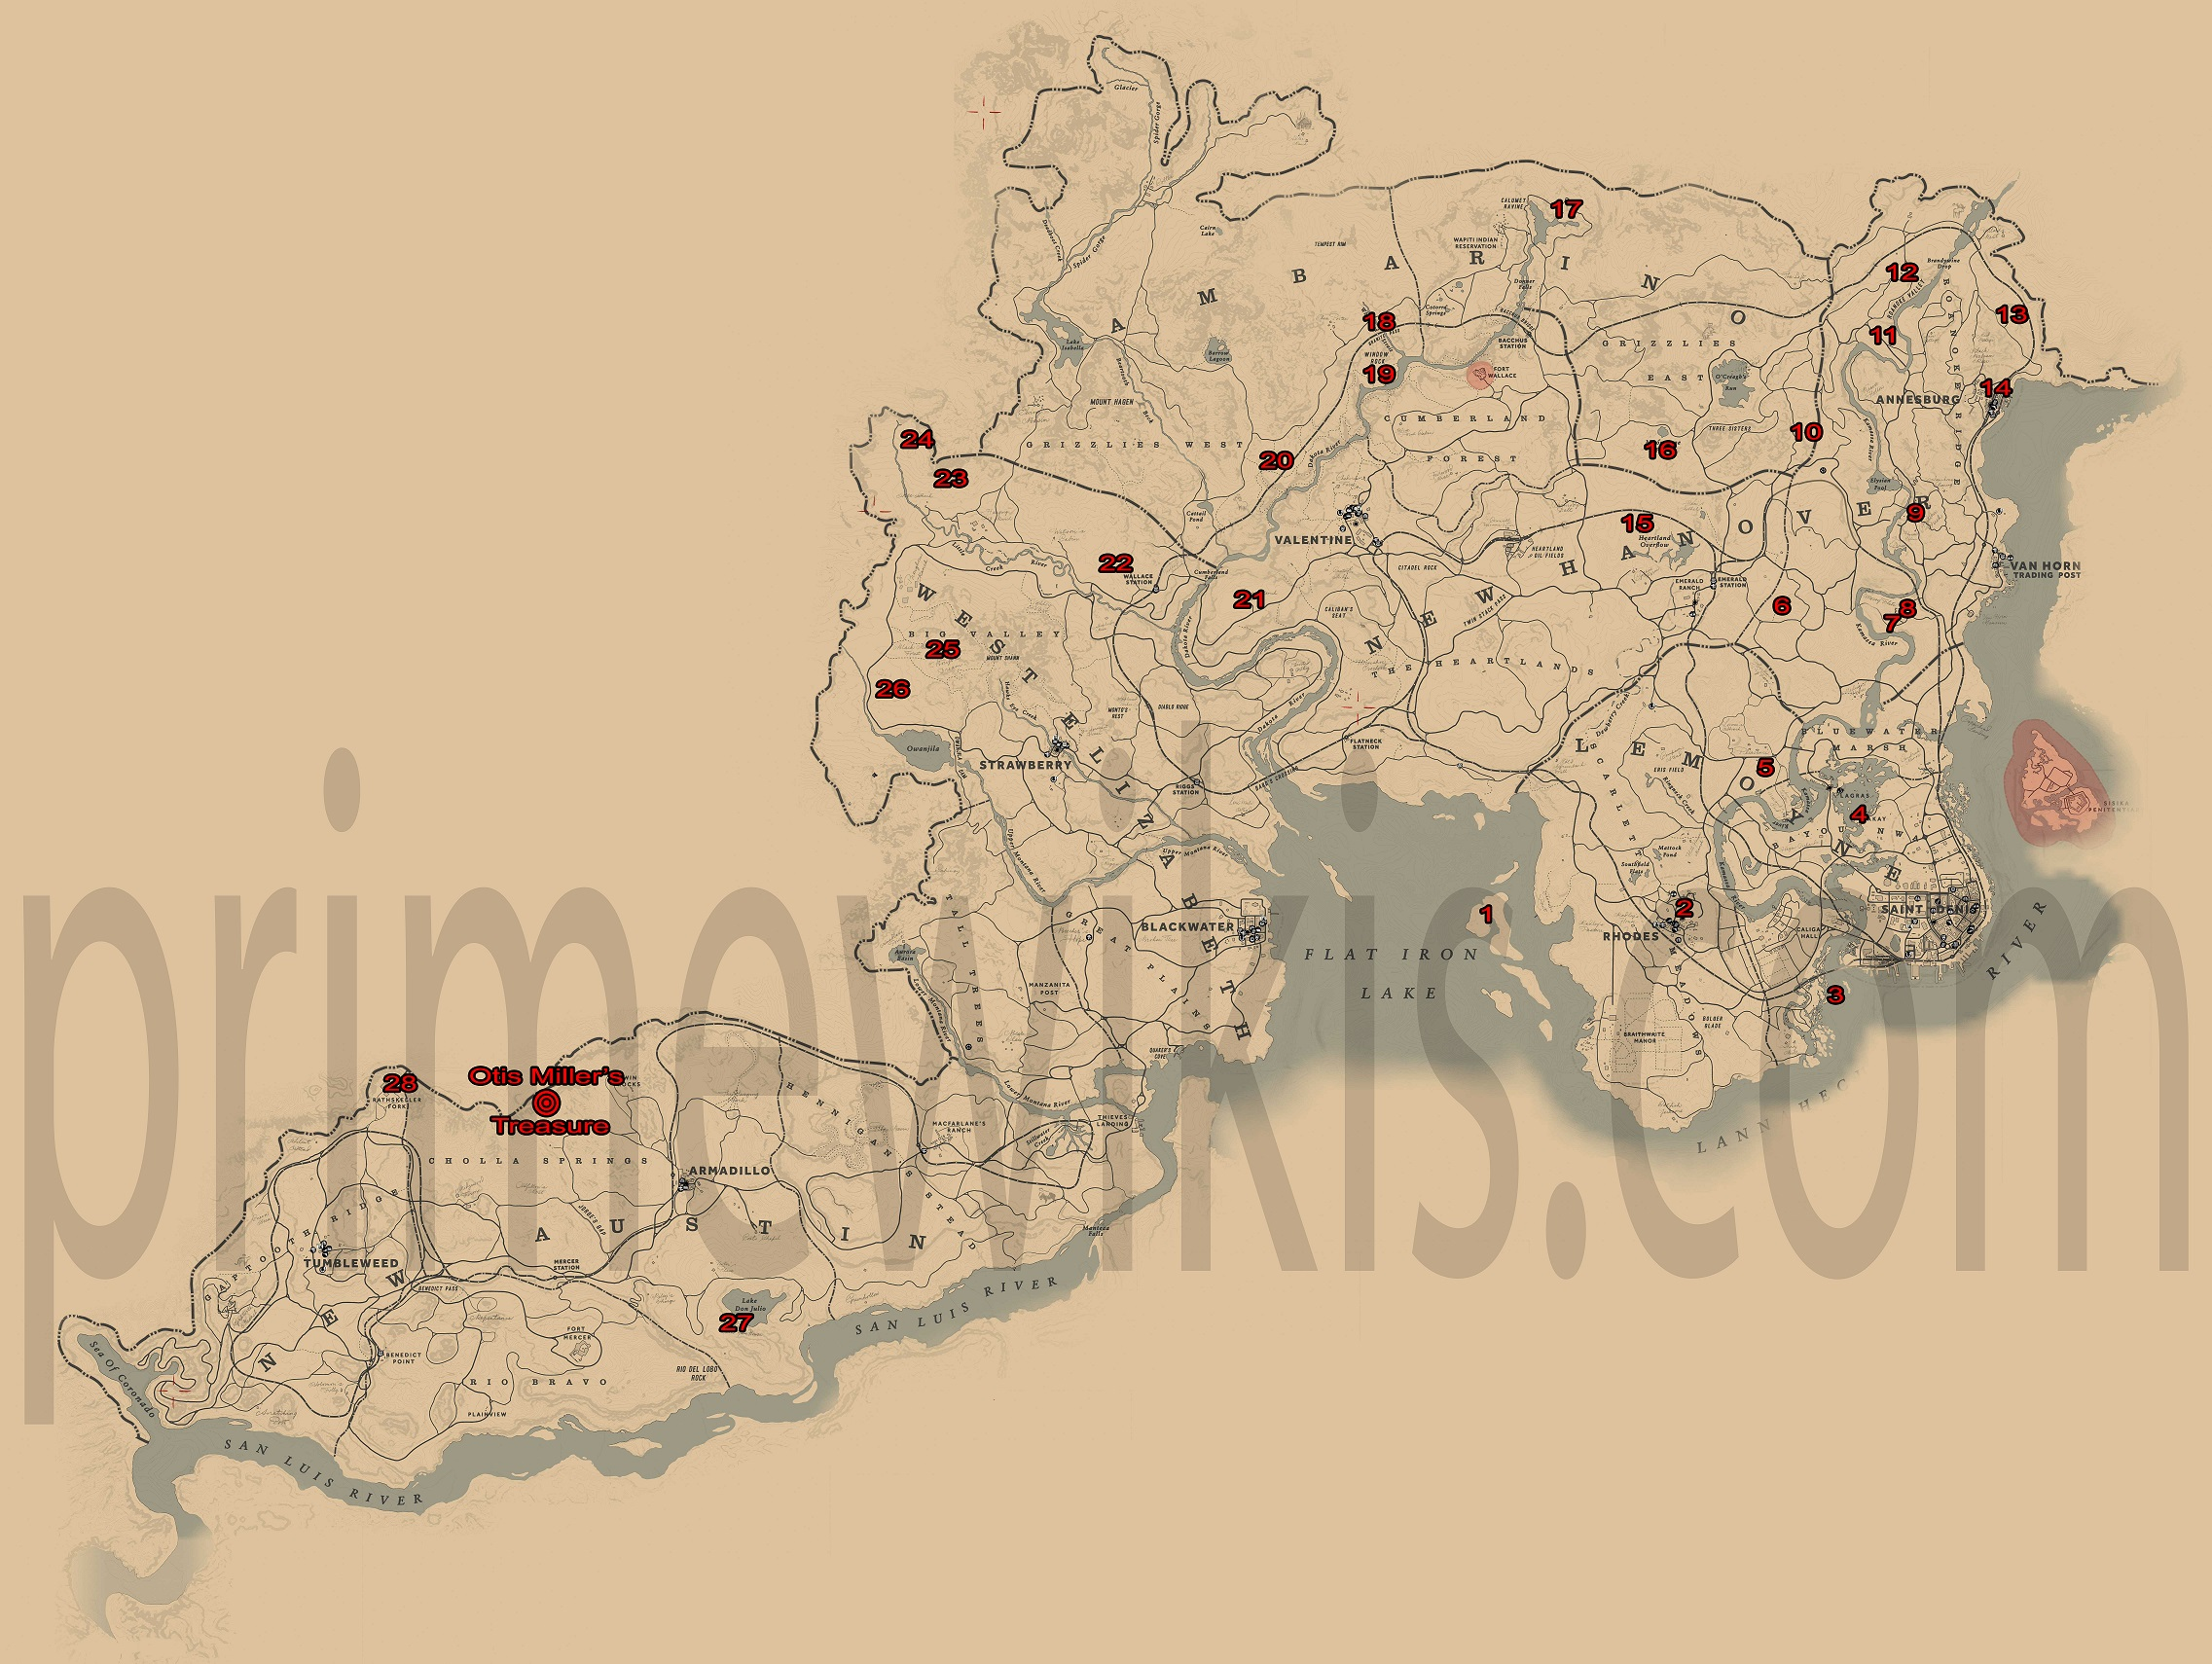 Red Dead Redemption Us Map.Unique Weapons Outfits Items Locations Red Dead Redemption 2